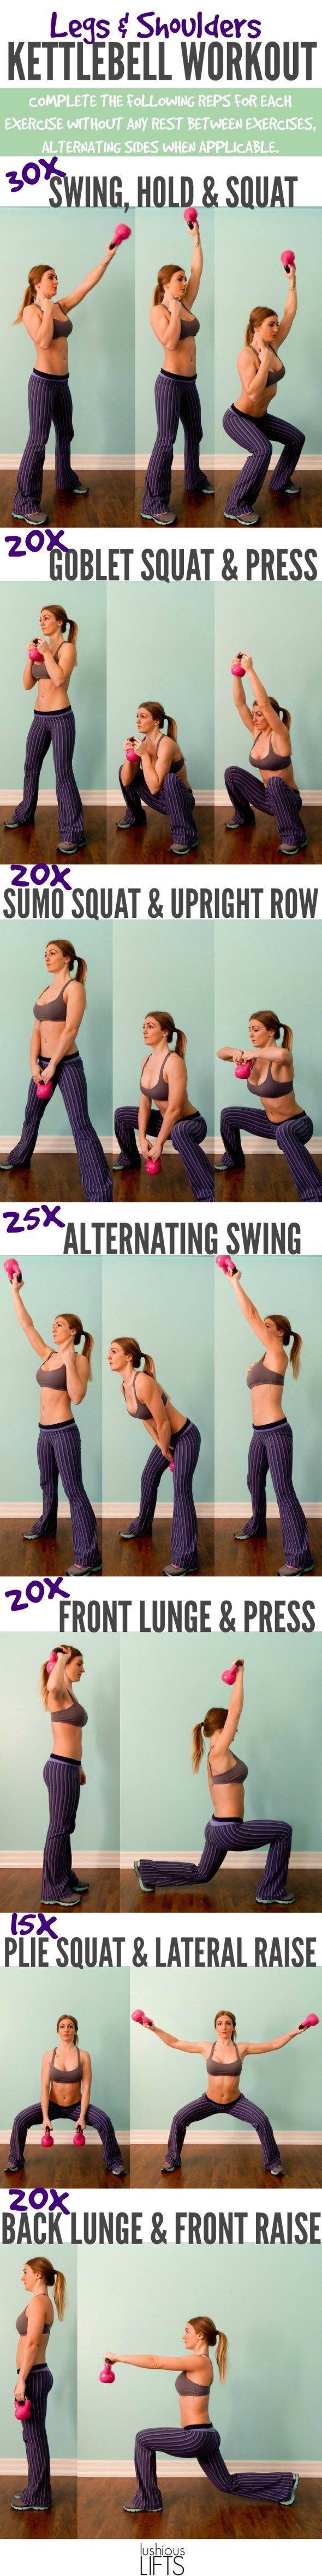 Legs and Shoulders Kettlebell Workout    Lushious Lifts